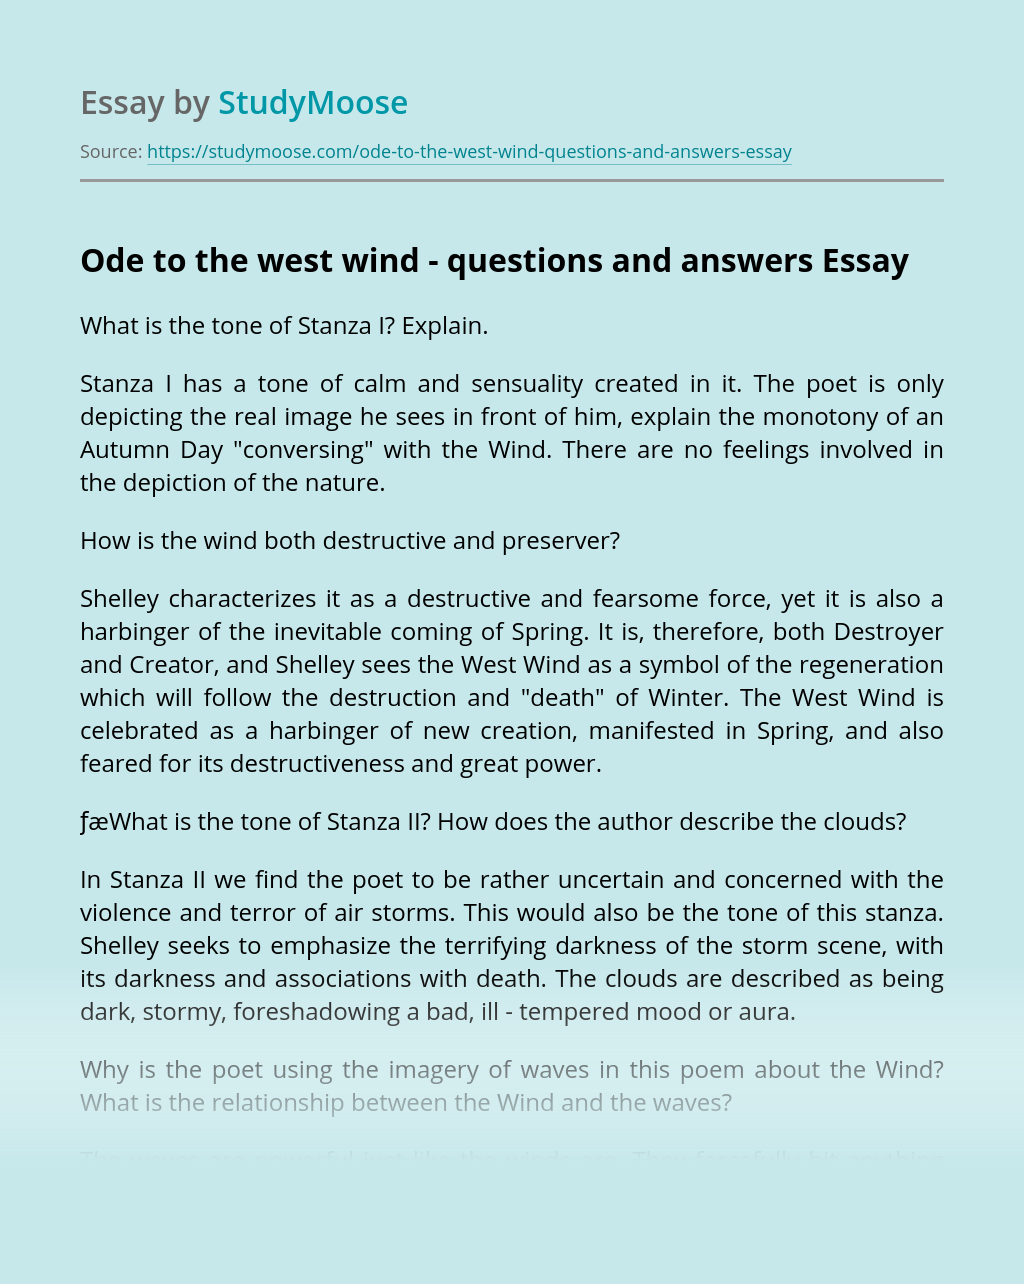 Ode to the west wind - questions and answers